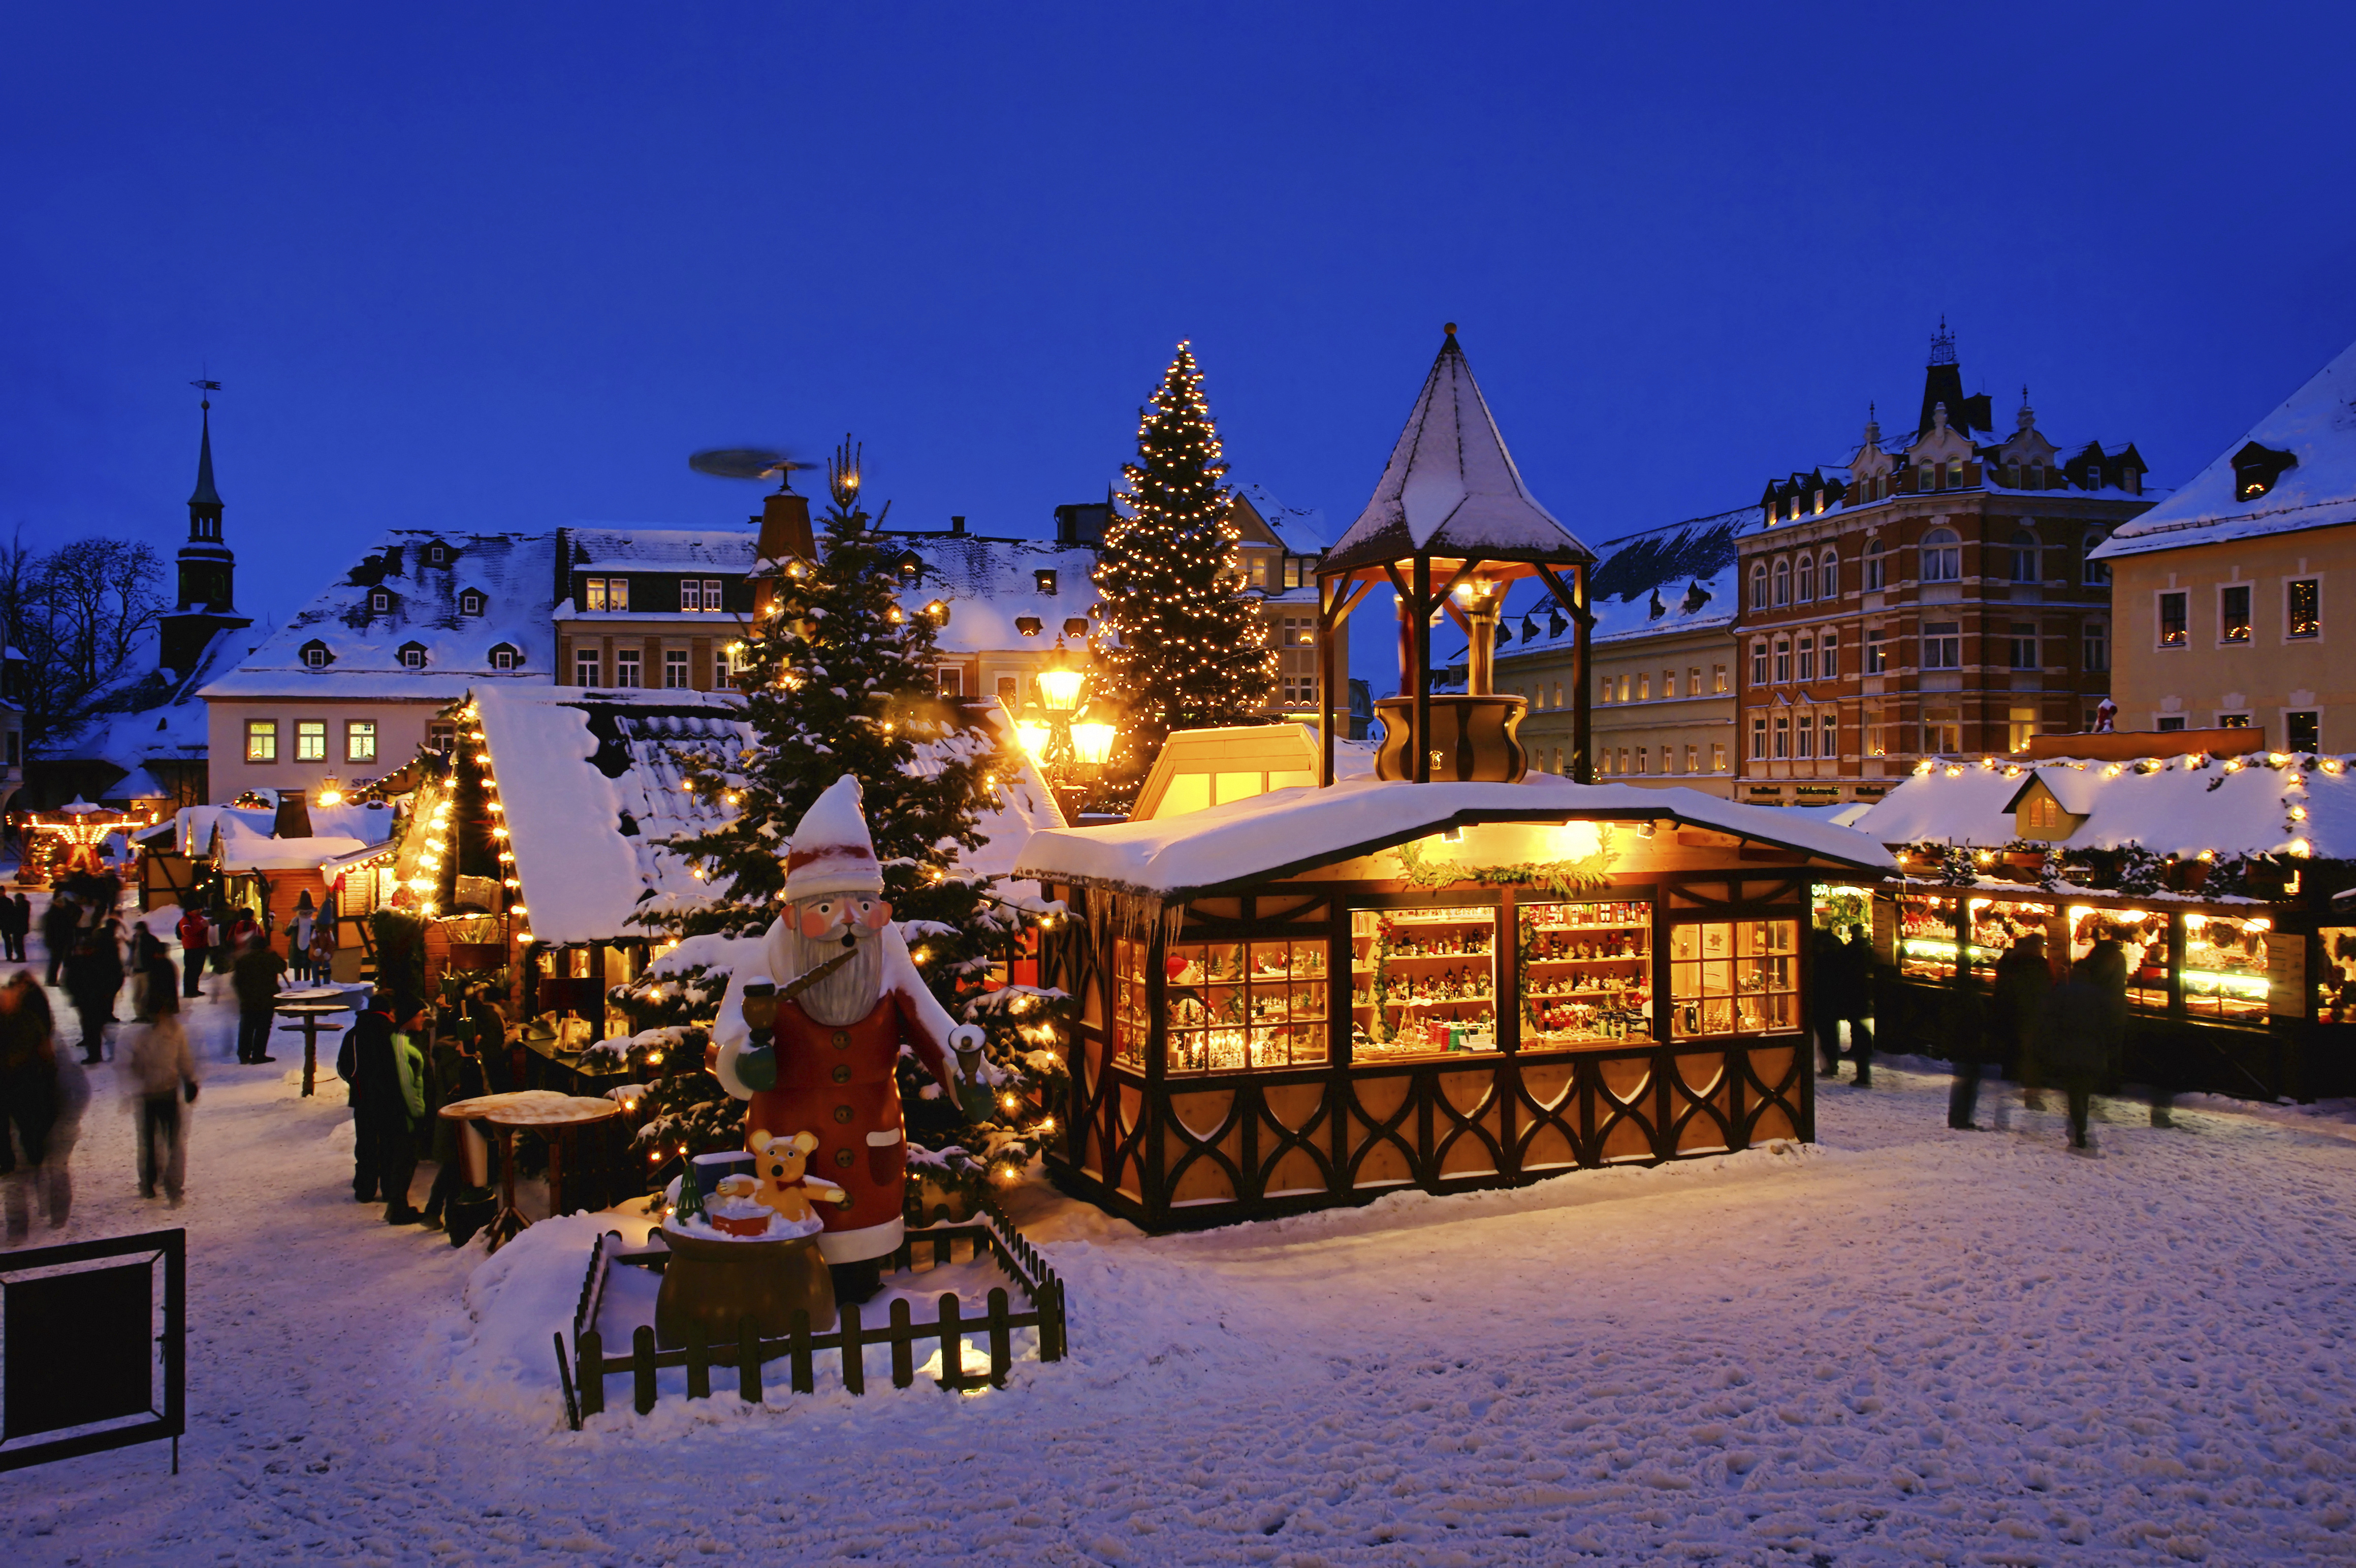 Christmas In Europe.10 Best Christmas Market Cities In Europe Skyscanner